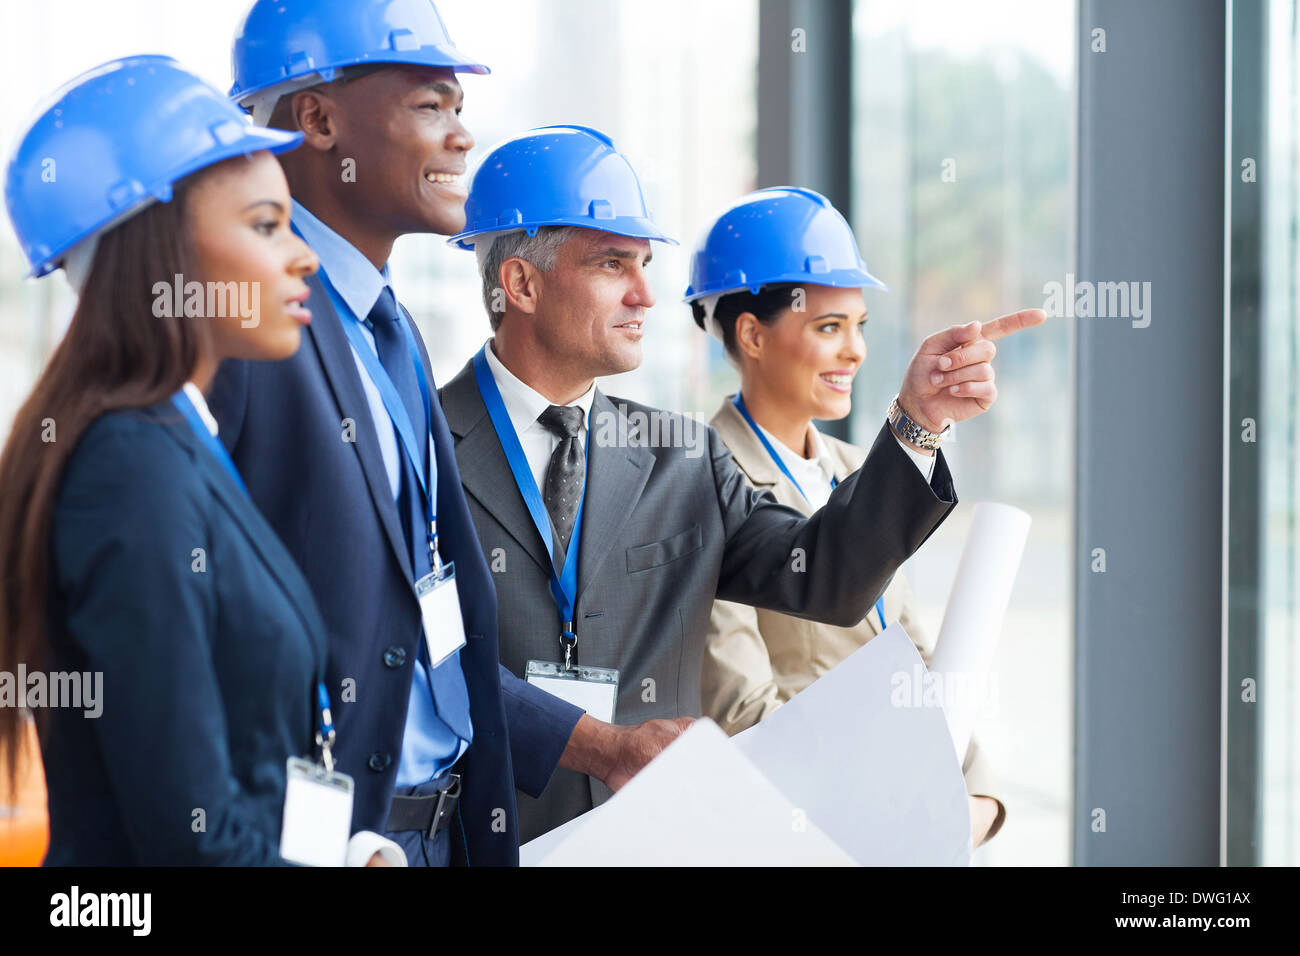 Stock Photo - group of successful architects discussing project in modern  office